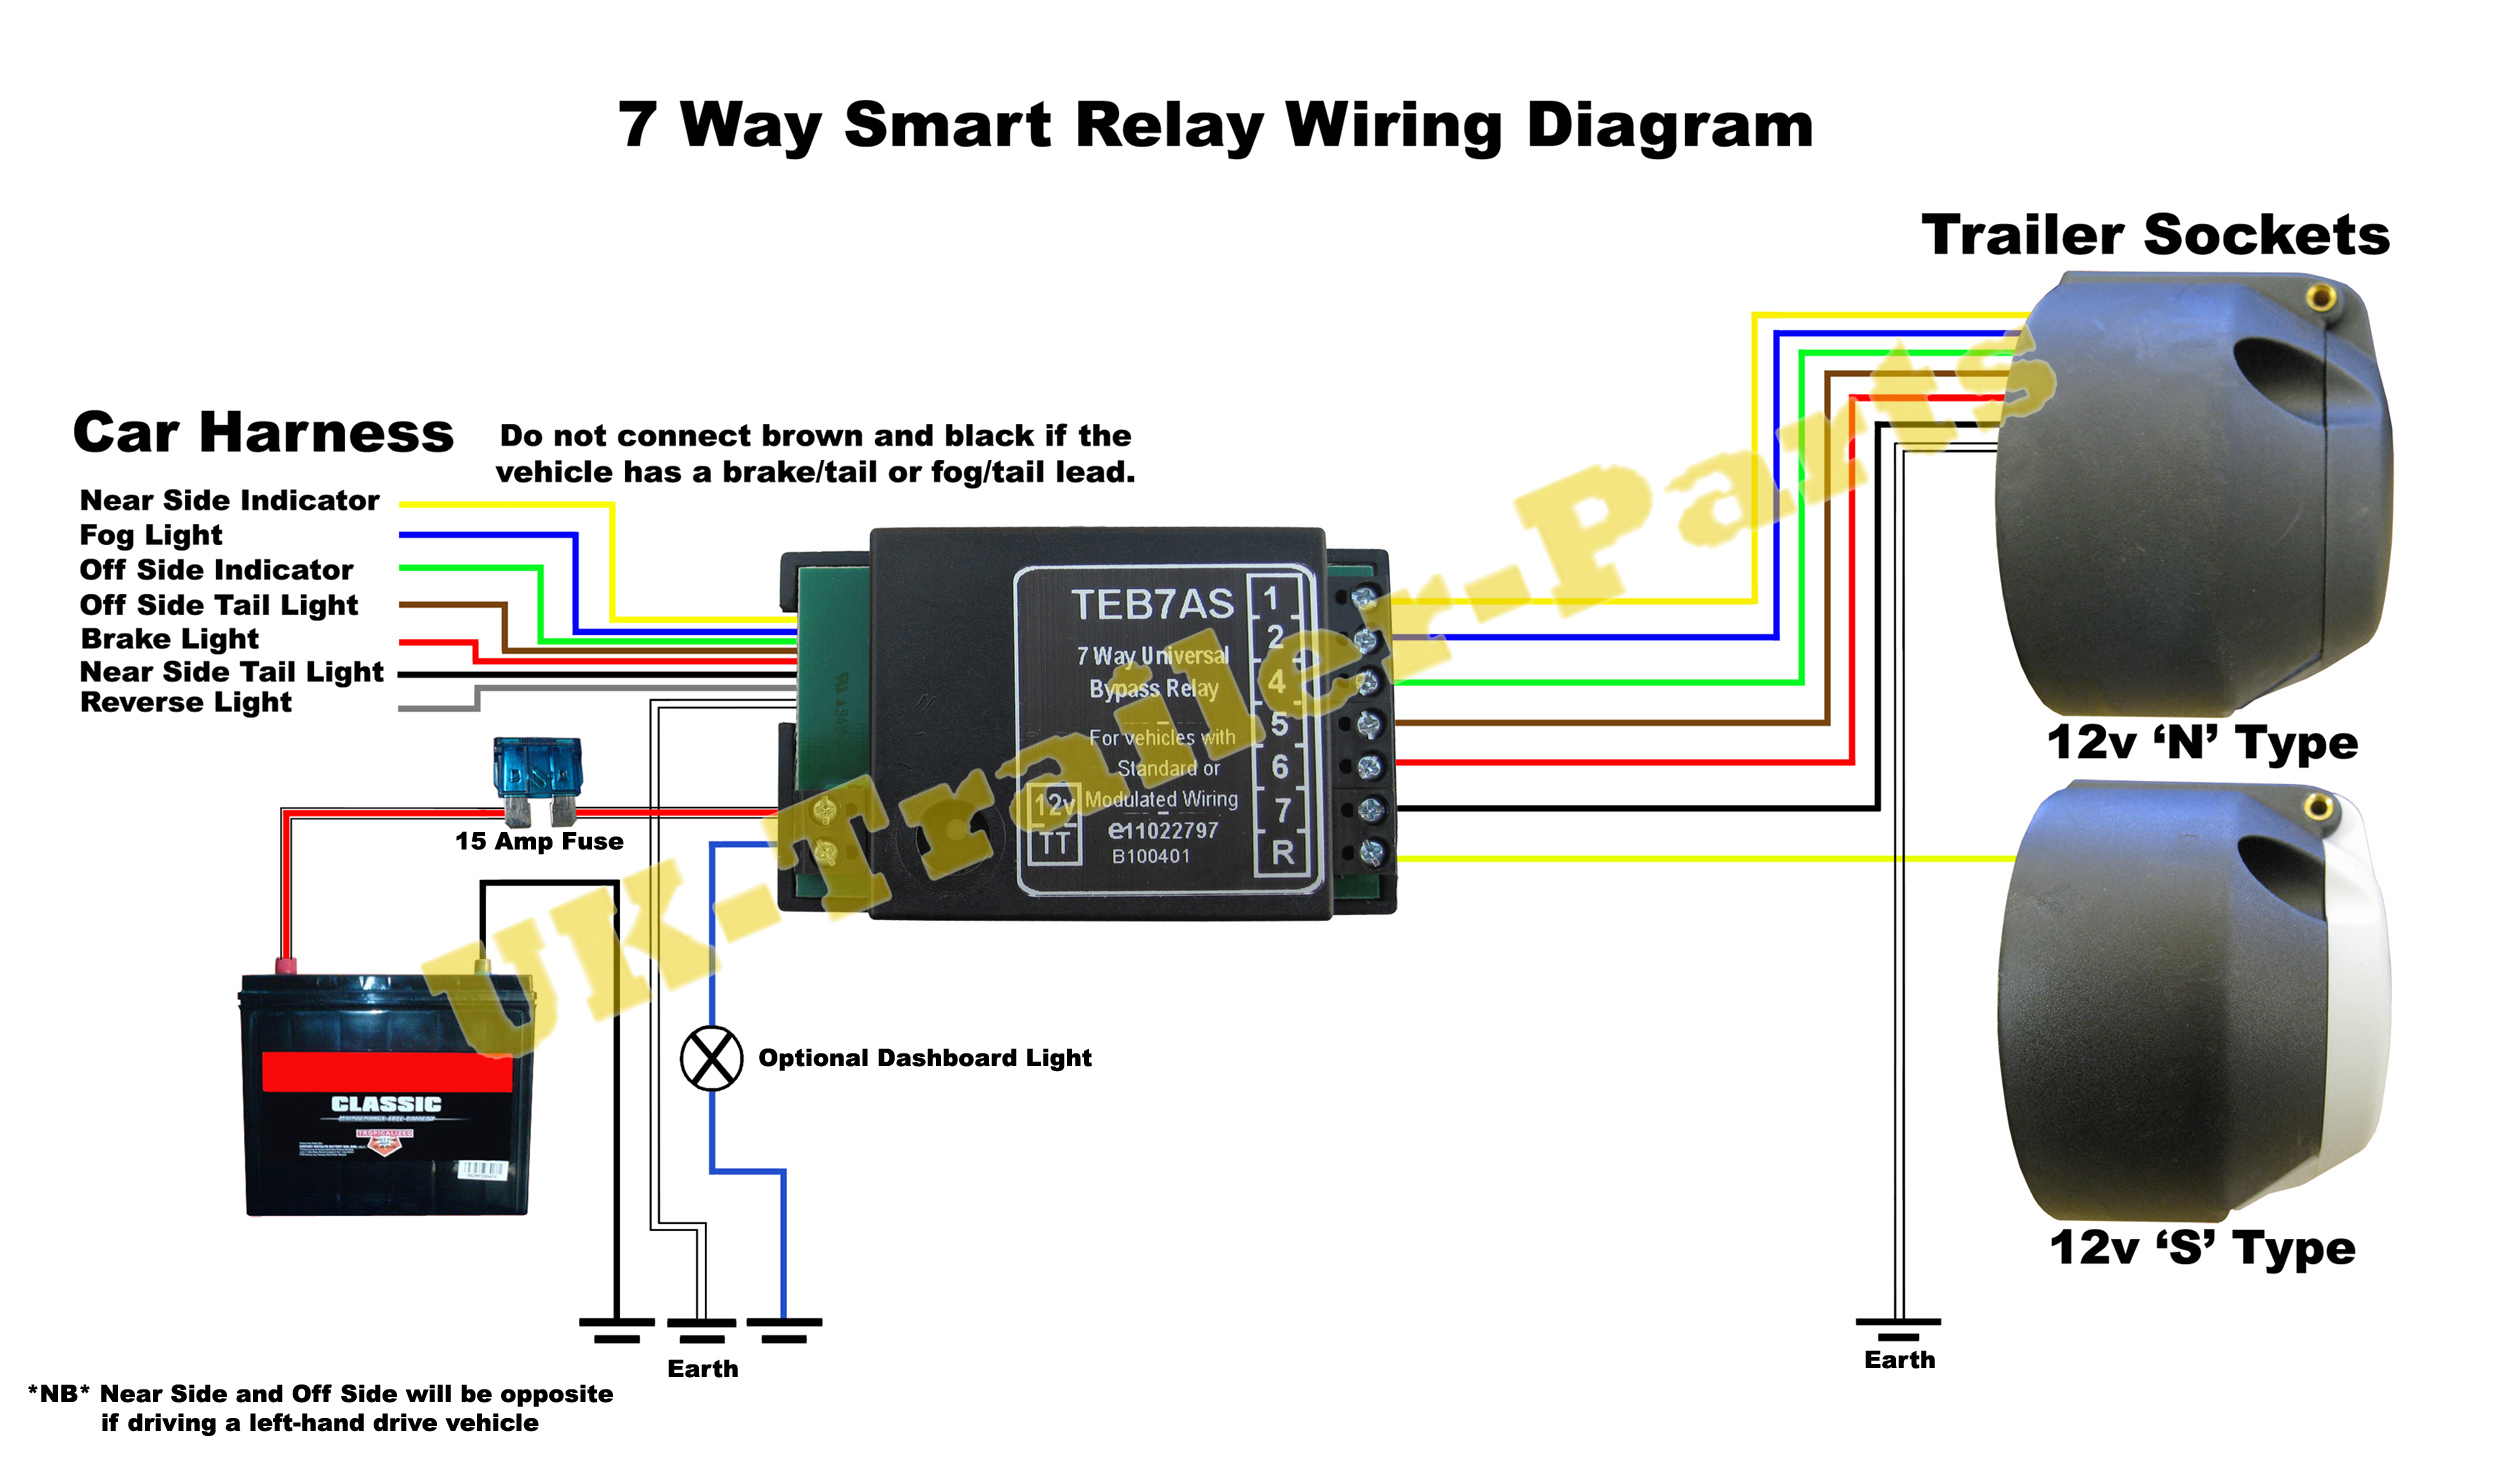 smart relay wiring diagram2 bmw towbar wiring diagram bmw wiring diagrams instruction toyota hiace towbar wiring diagram at gsmx.co